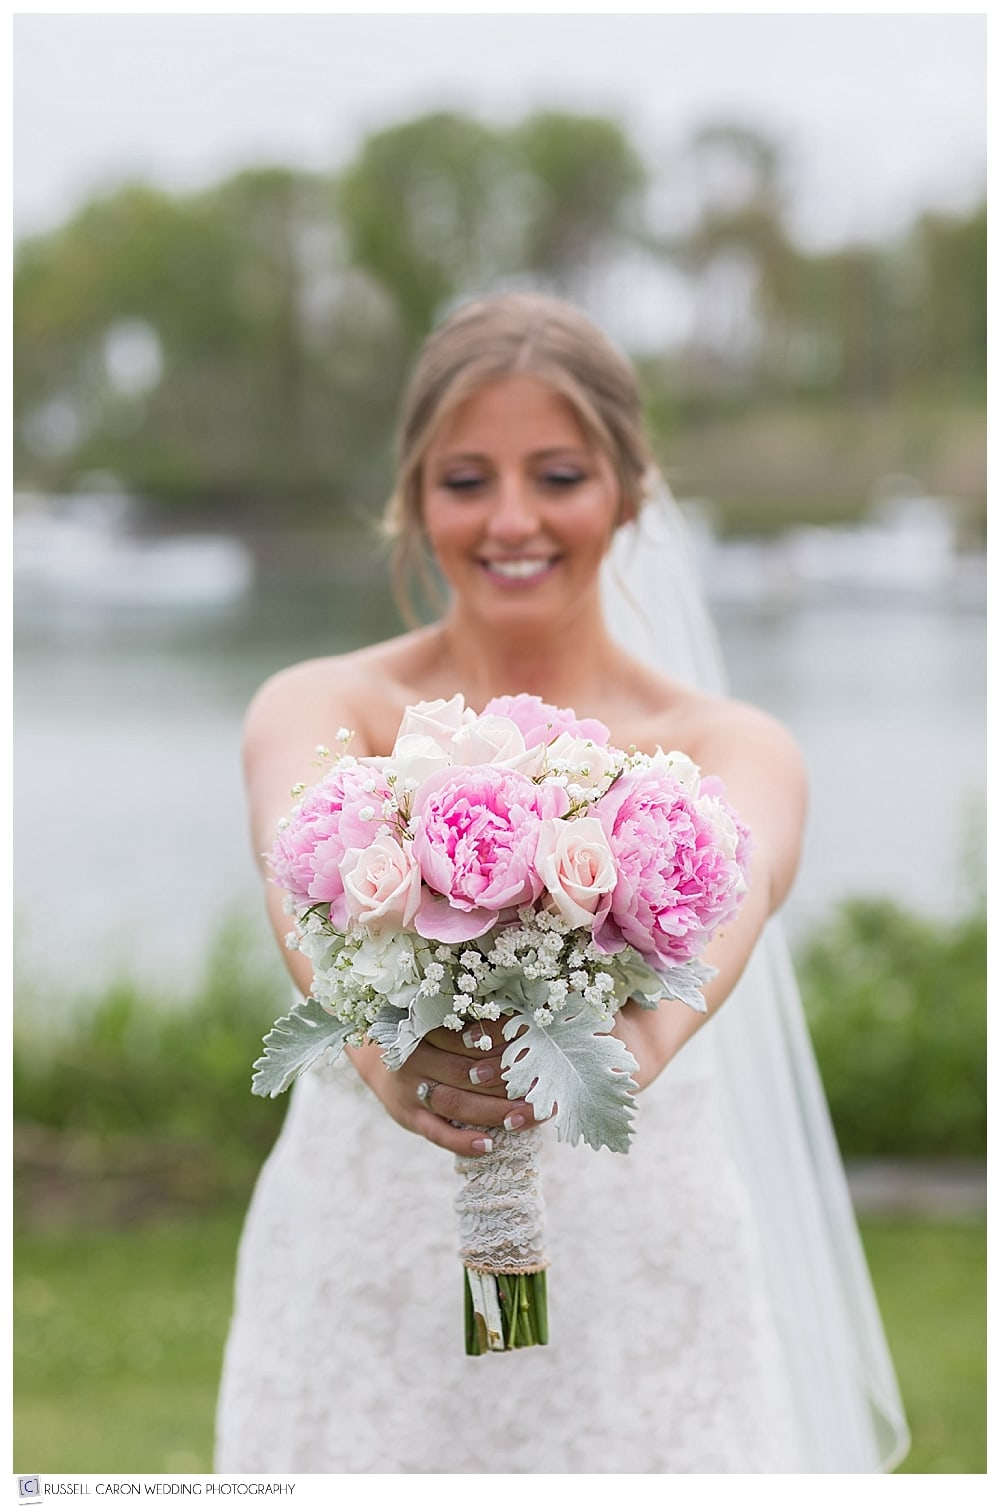 Bride holding out wedding bouquet